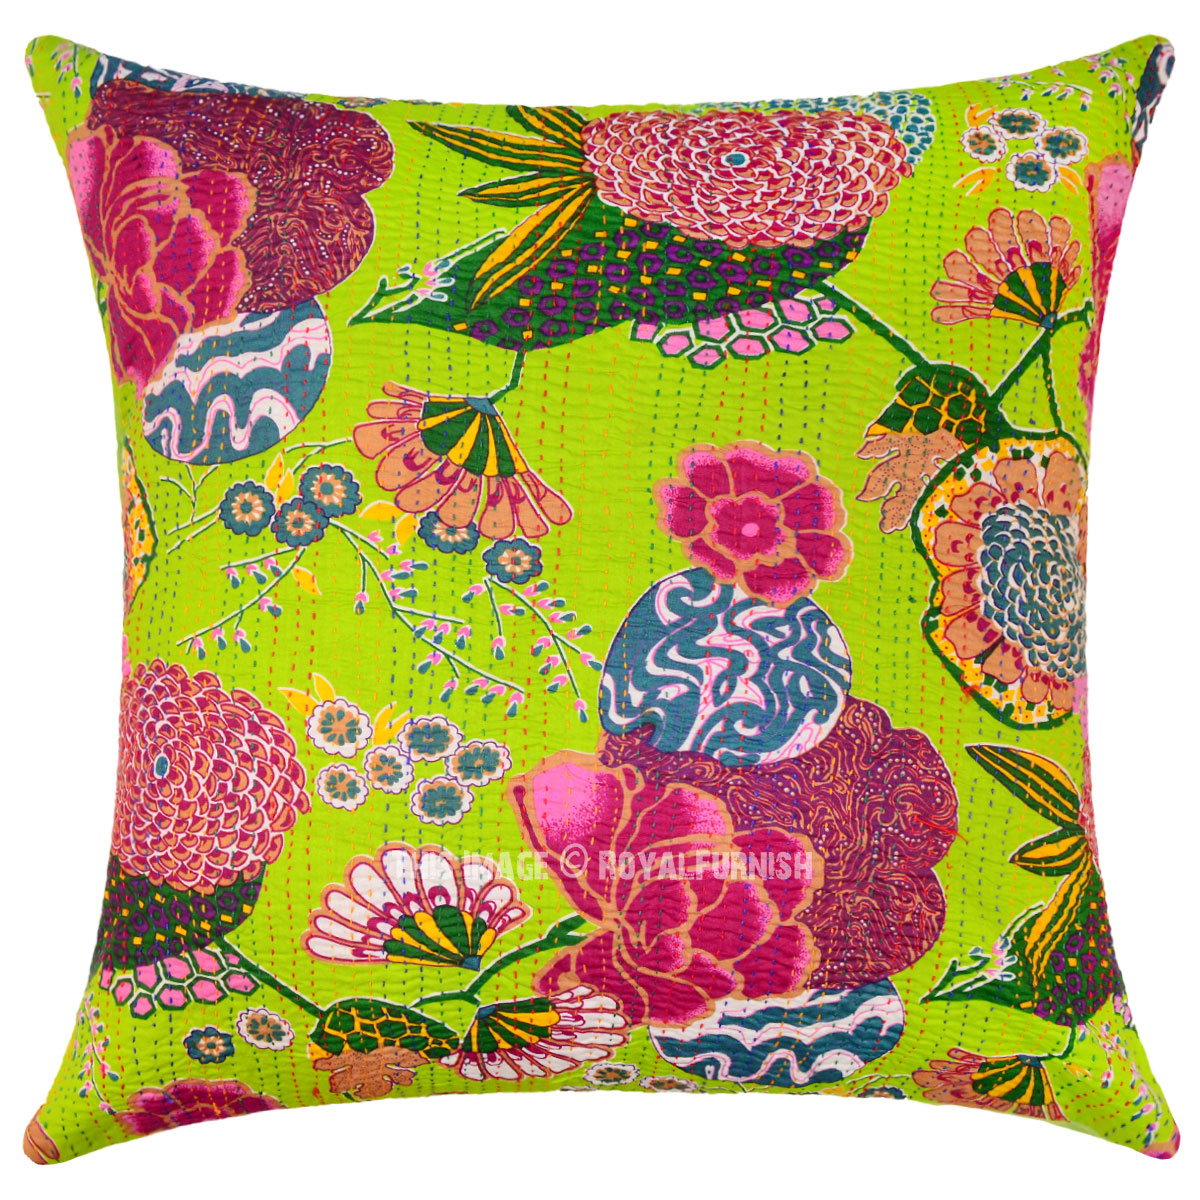 Green Decorative Tropical Kantha Throw Pillow Cover 24x24. Kitchen Sink Adhesive. Kitchen Sink Depths. How To Cut A Countertop For A Kitchen Sink. Best Way To Unclog A Kitchen Sink. Cheap Black Kitchen Sinks. B And Q Kitchen Sink. Best Rated Kitchen Sinks. Kitchen Sinks Usa